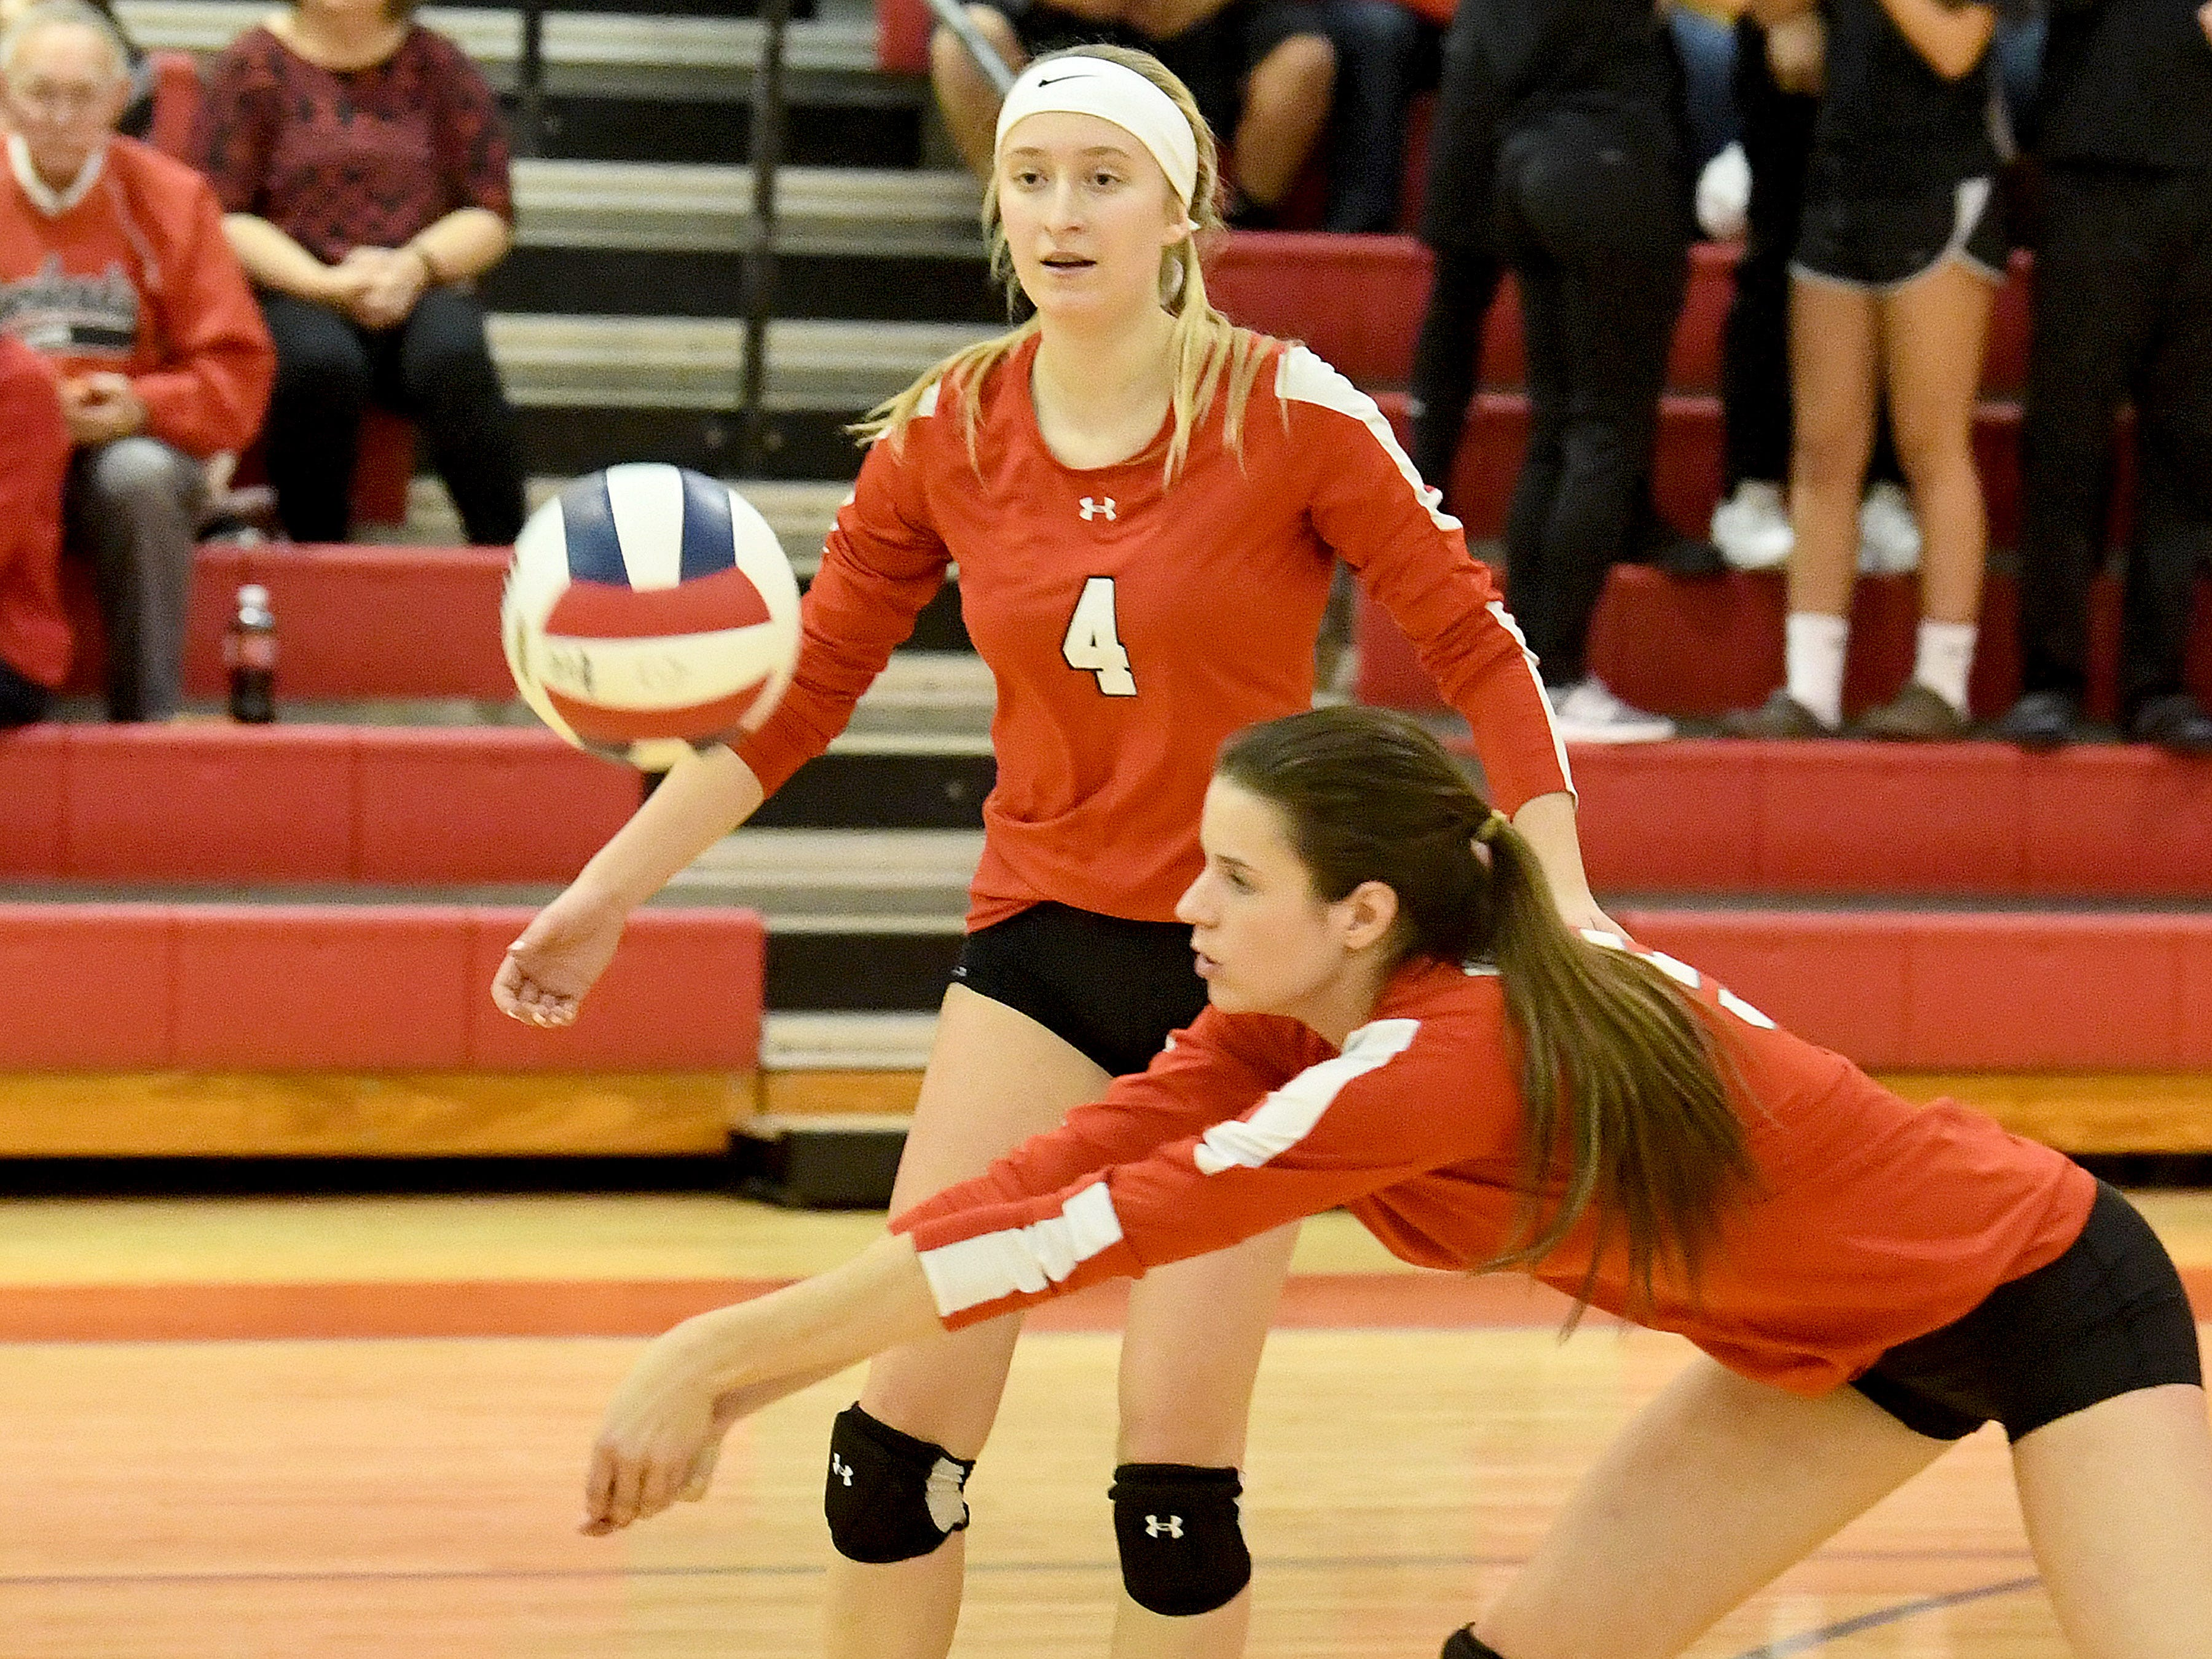 Riverheads' Emma Tomlinson watches as teammate Abbey Eavers bumps the ball during the Region 1B volleyball championship played in Greenville on Wednesday, Nov. 7, 2018.